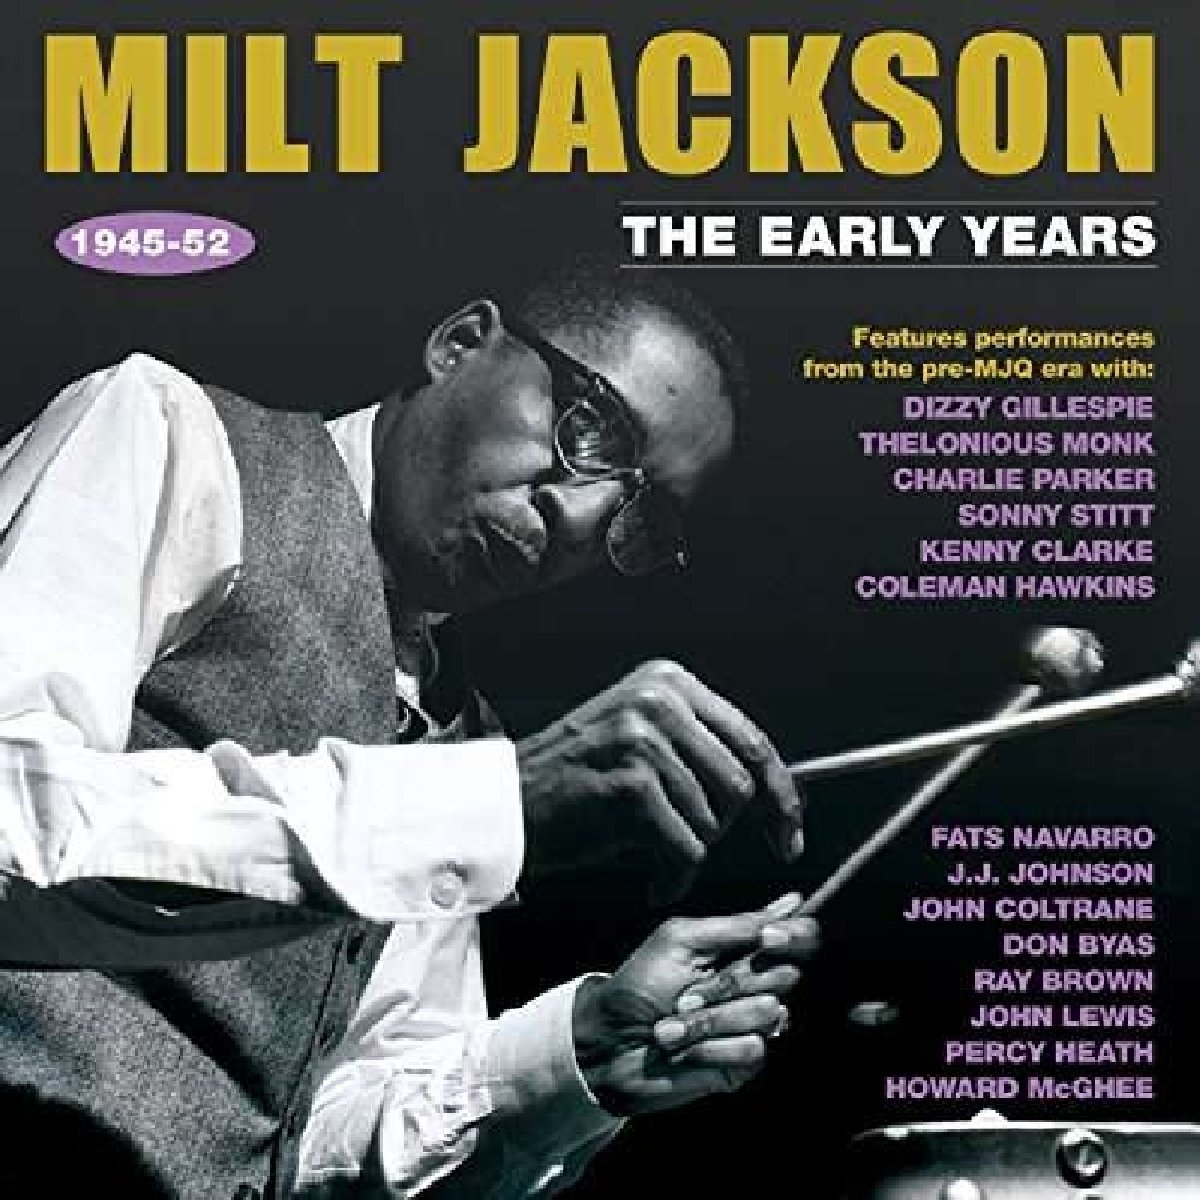 Milt Jackson - The Early Years 1945-52 (2PC)